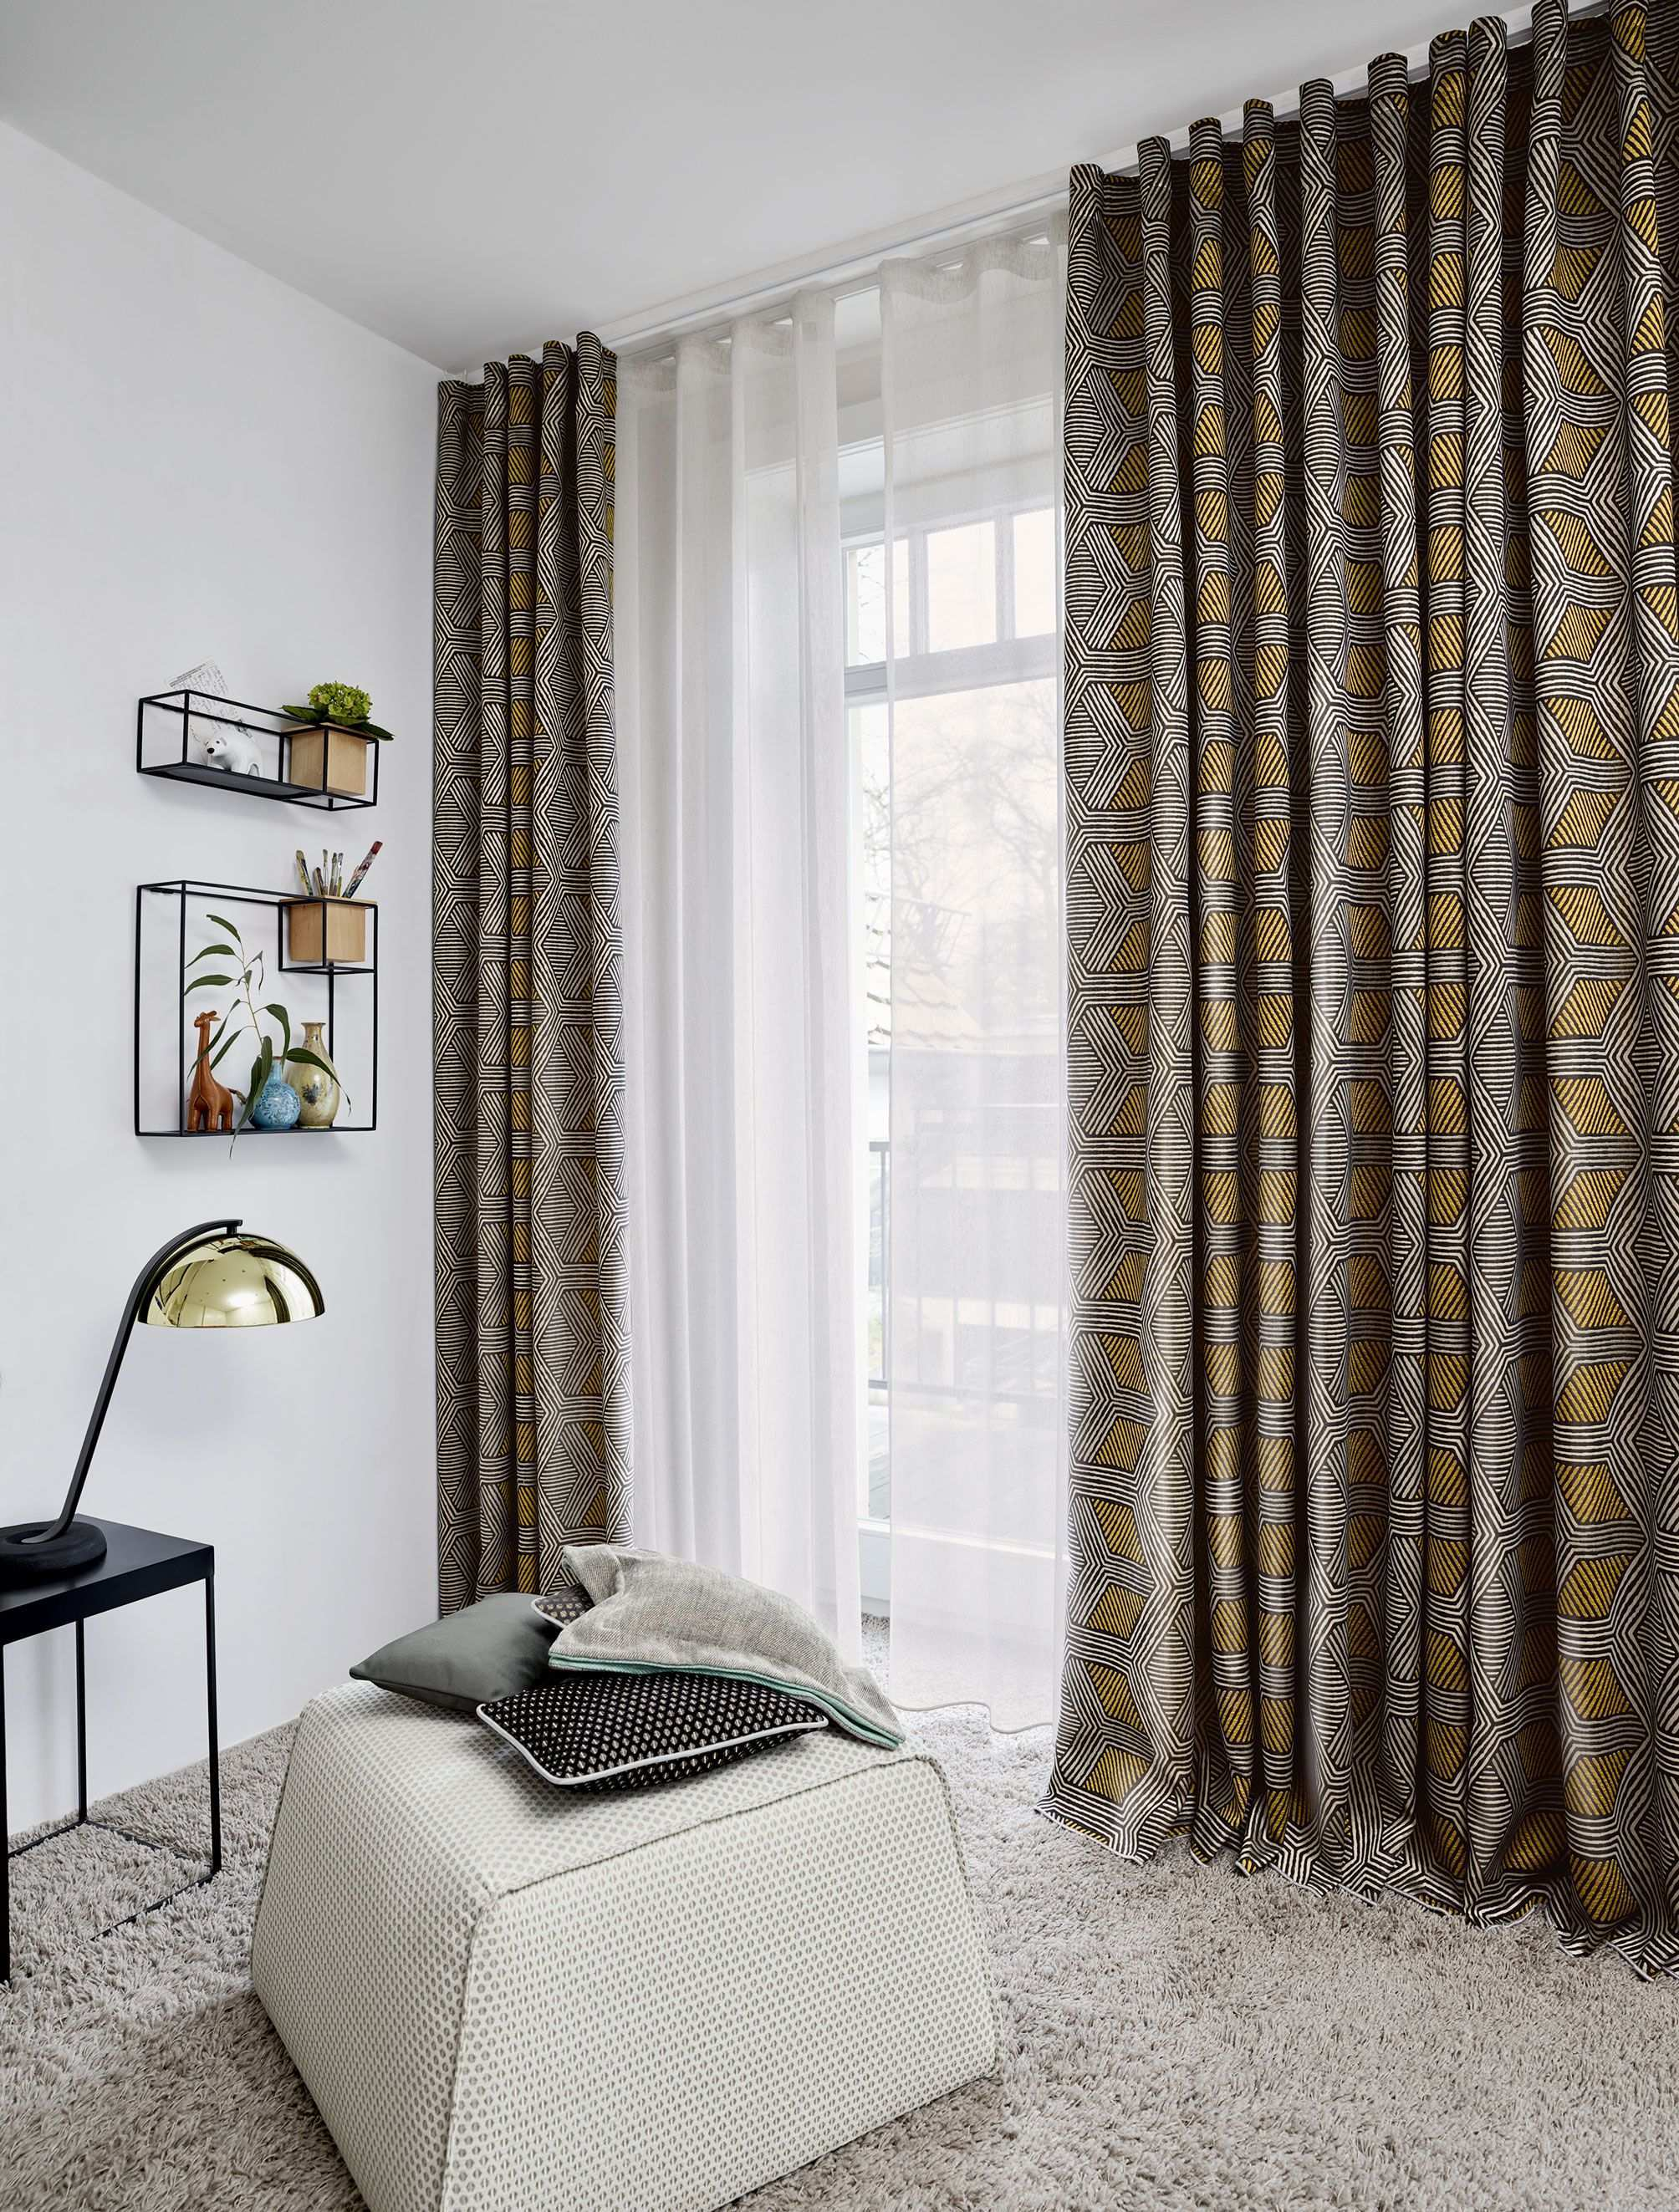 A Must Have Weave Traffic A Jacquard Fabric Impresses With A Modern Woven Structure That Incorporates Linen And Graphic Panels W Wohn Design Gardinen Wohnen